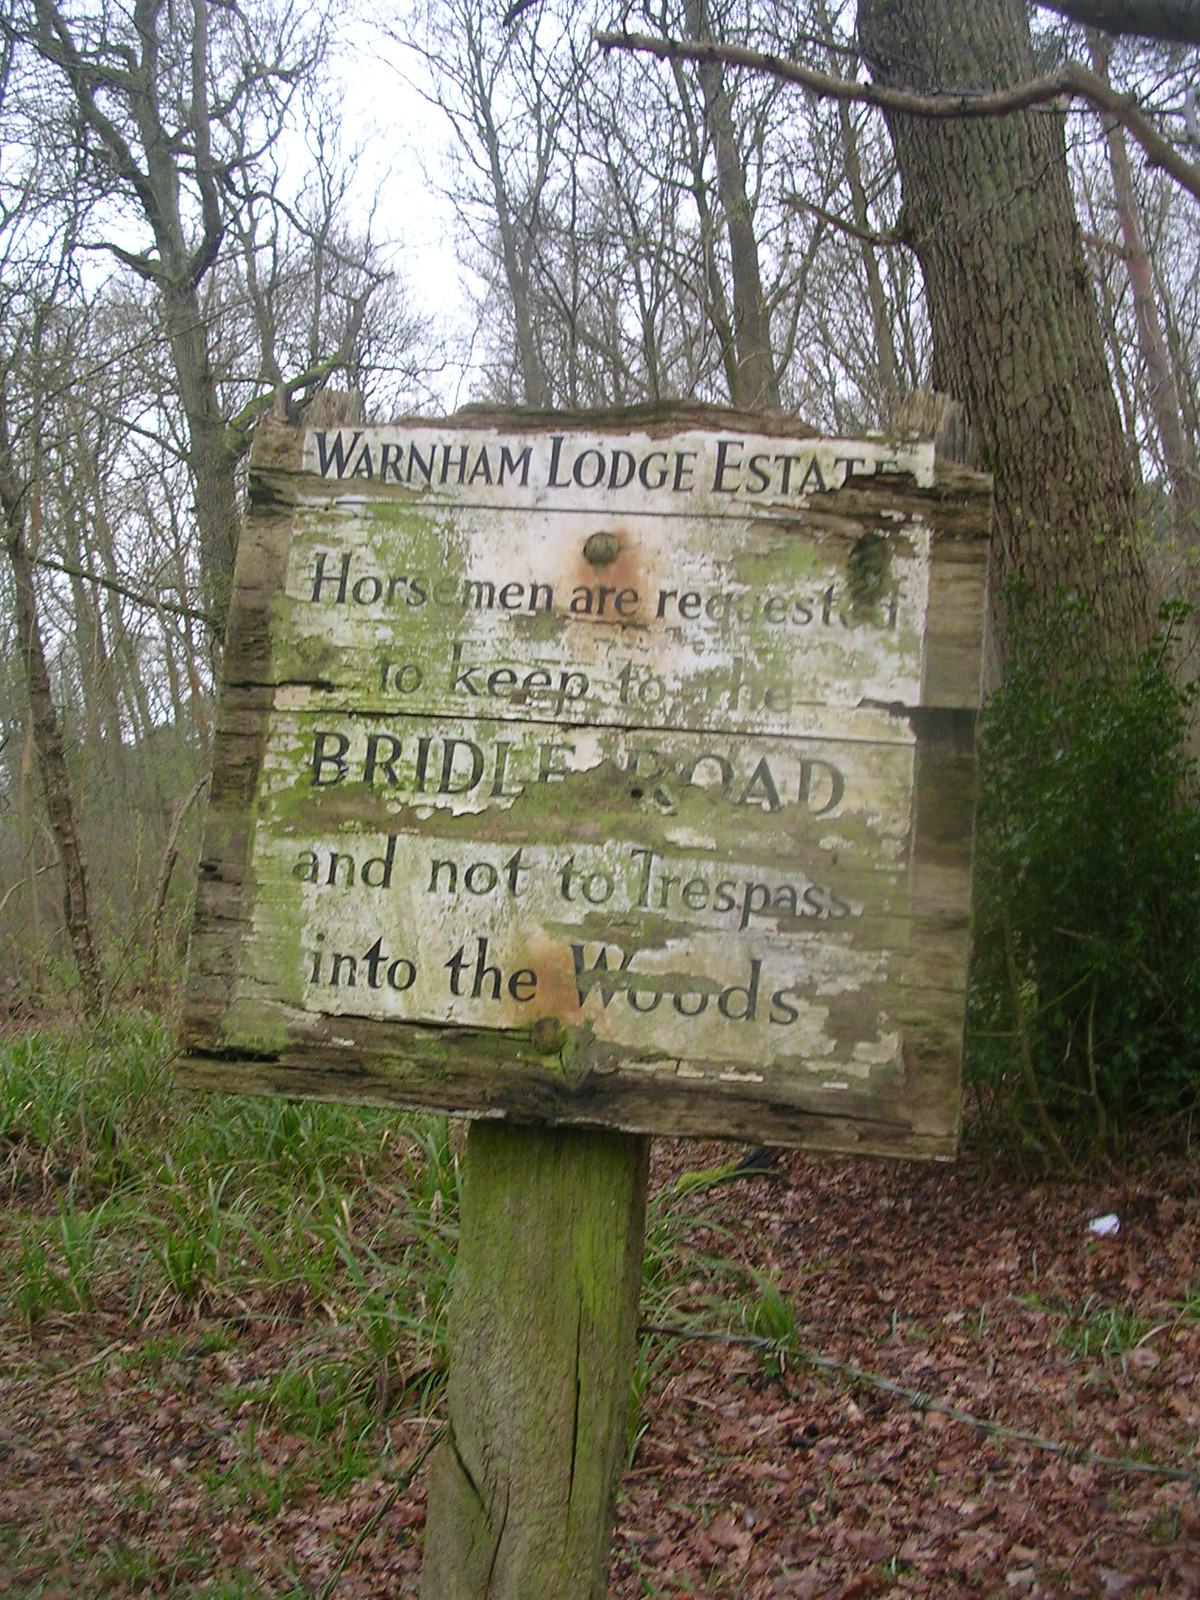 Sign There are a couple of strange signs on this walk. But this one is just quaint. Luckily, we didnt meet any trespassing horsemen. Ockley to Warhham